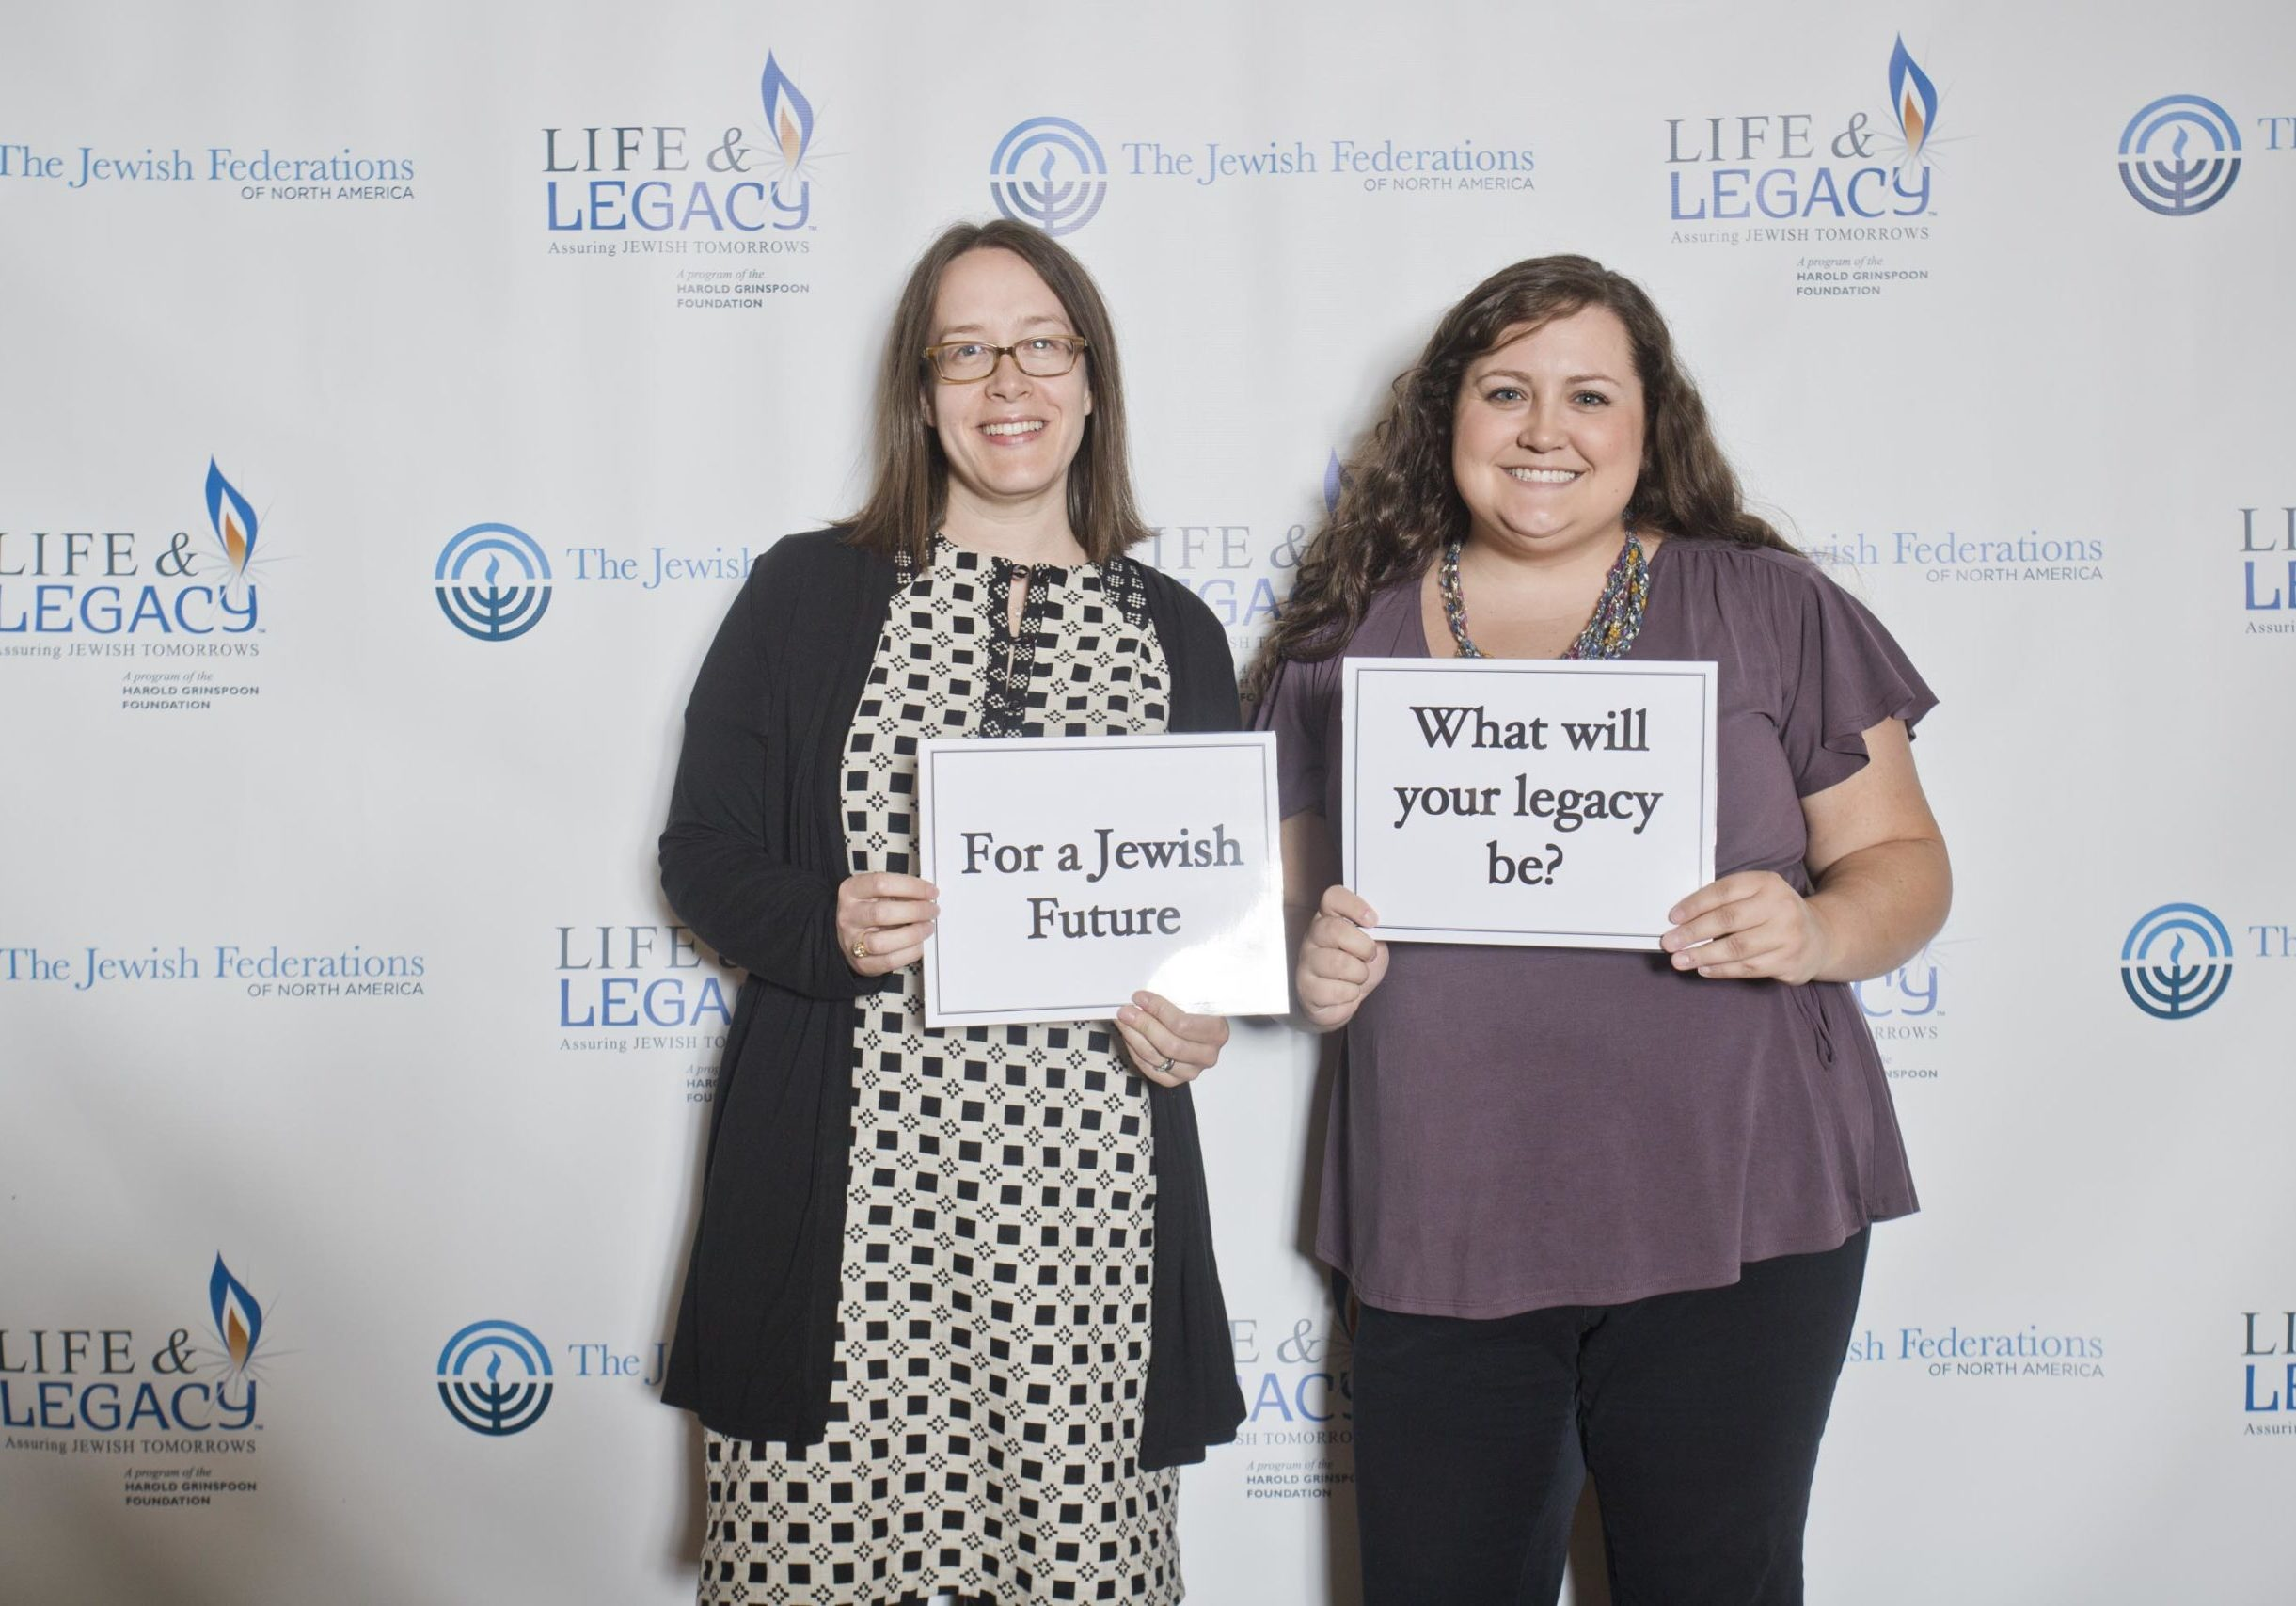 Molly and Ashley at the Federation Life and Legacy Conference